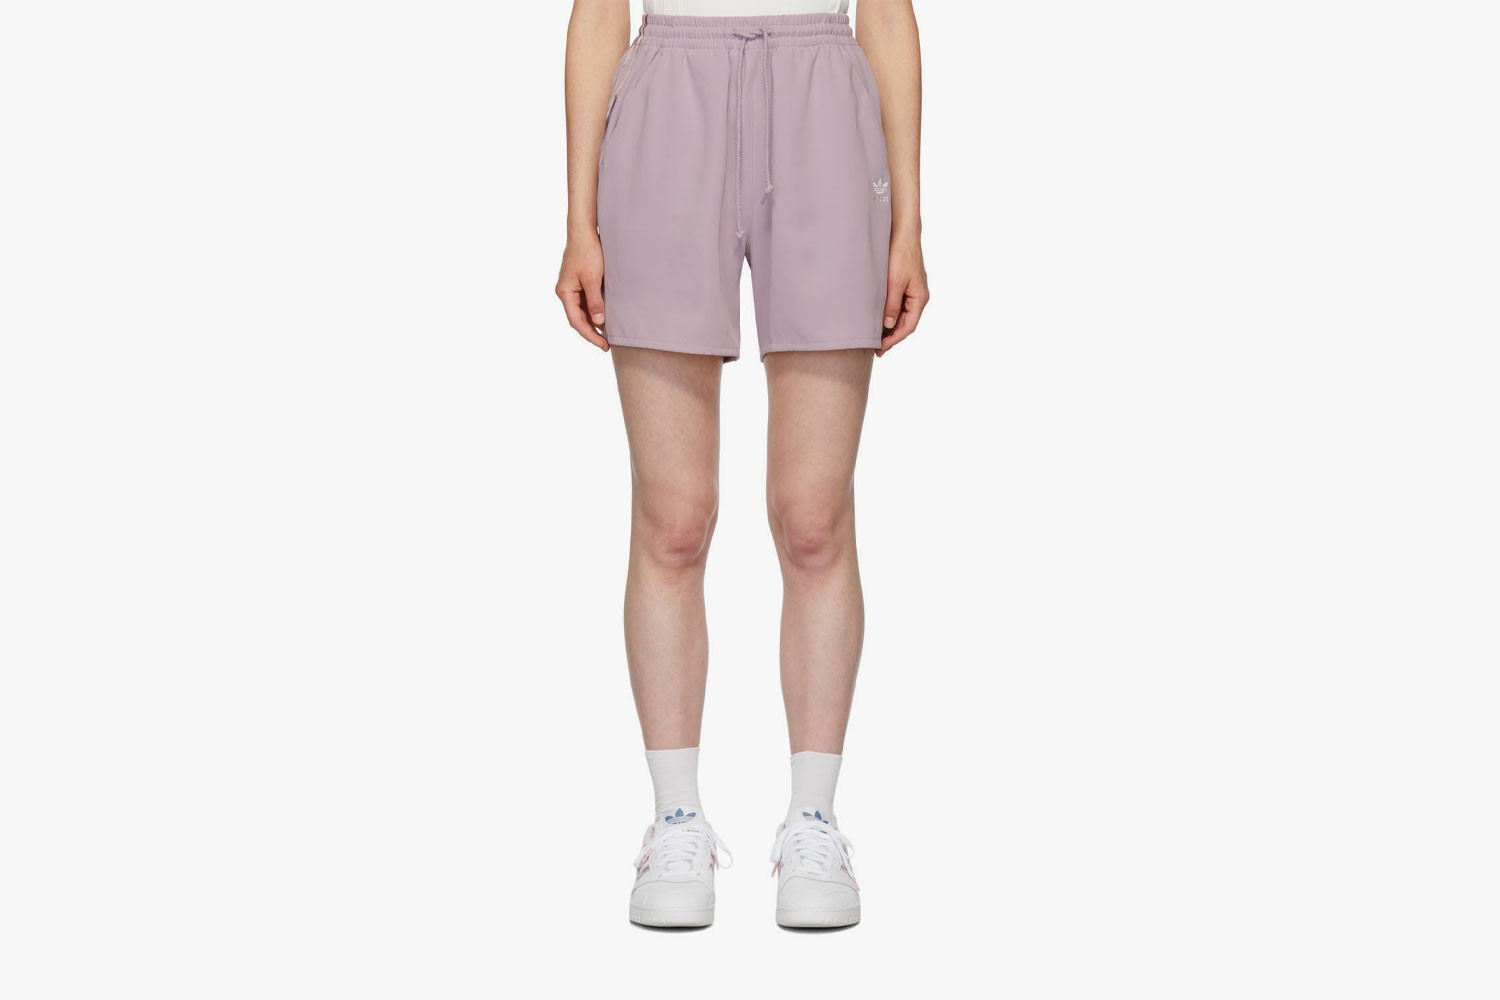 shorts summer affordable heat wave biker track trousers pyjamas linen ambush adidas originals alexander wang